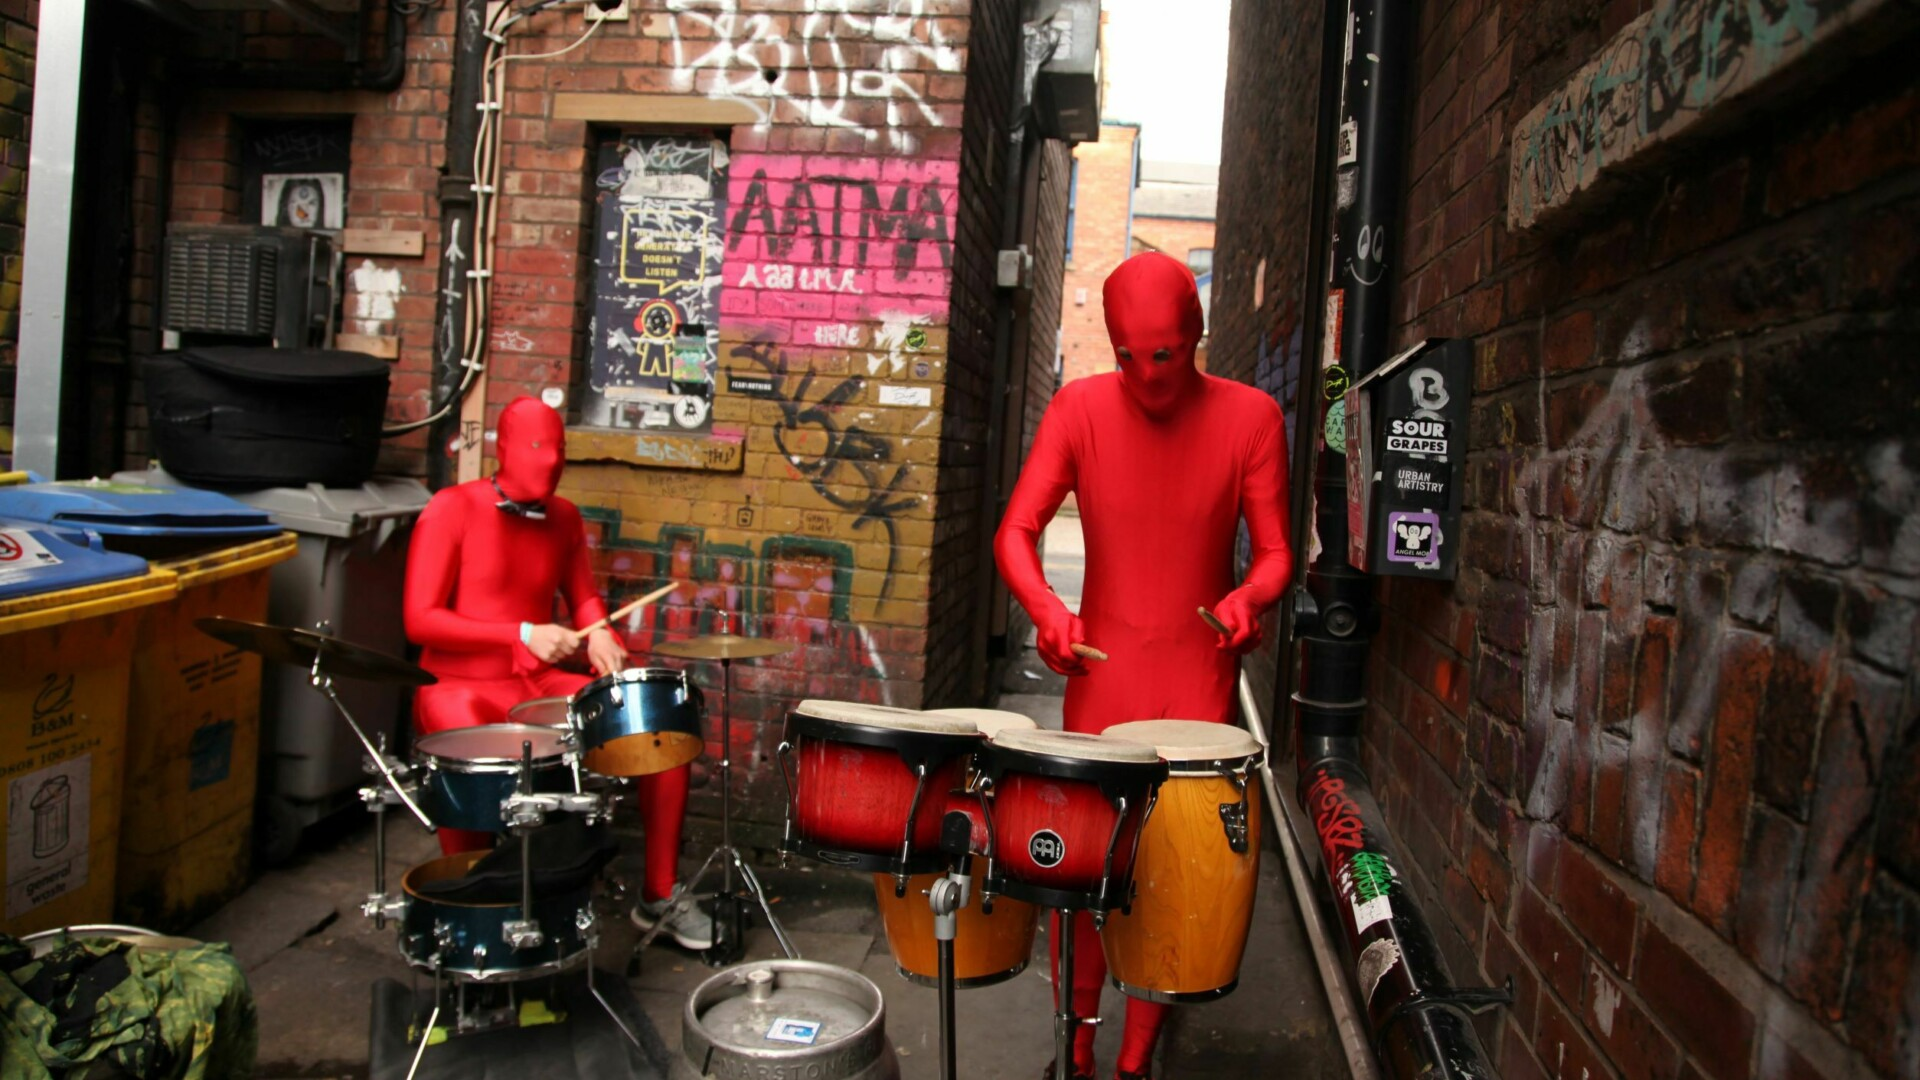 A band performing a gig outside the Peer Hat venue in Manchester